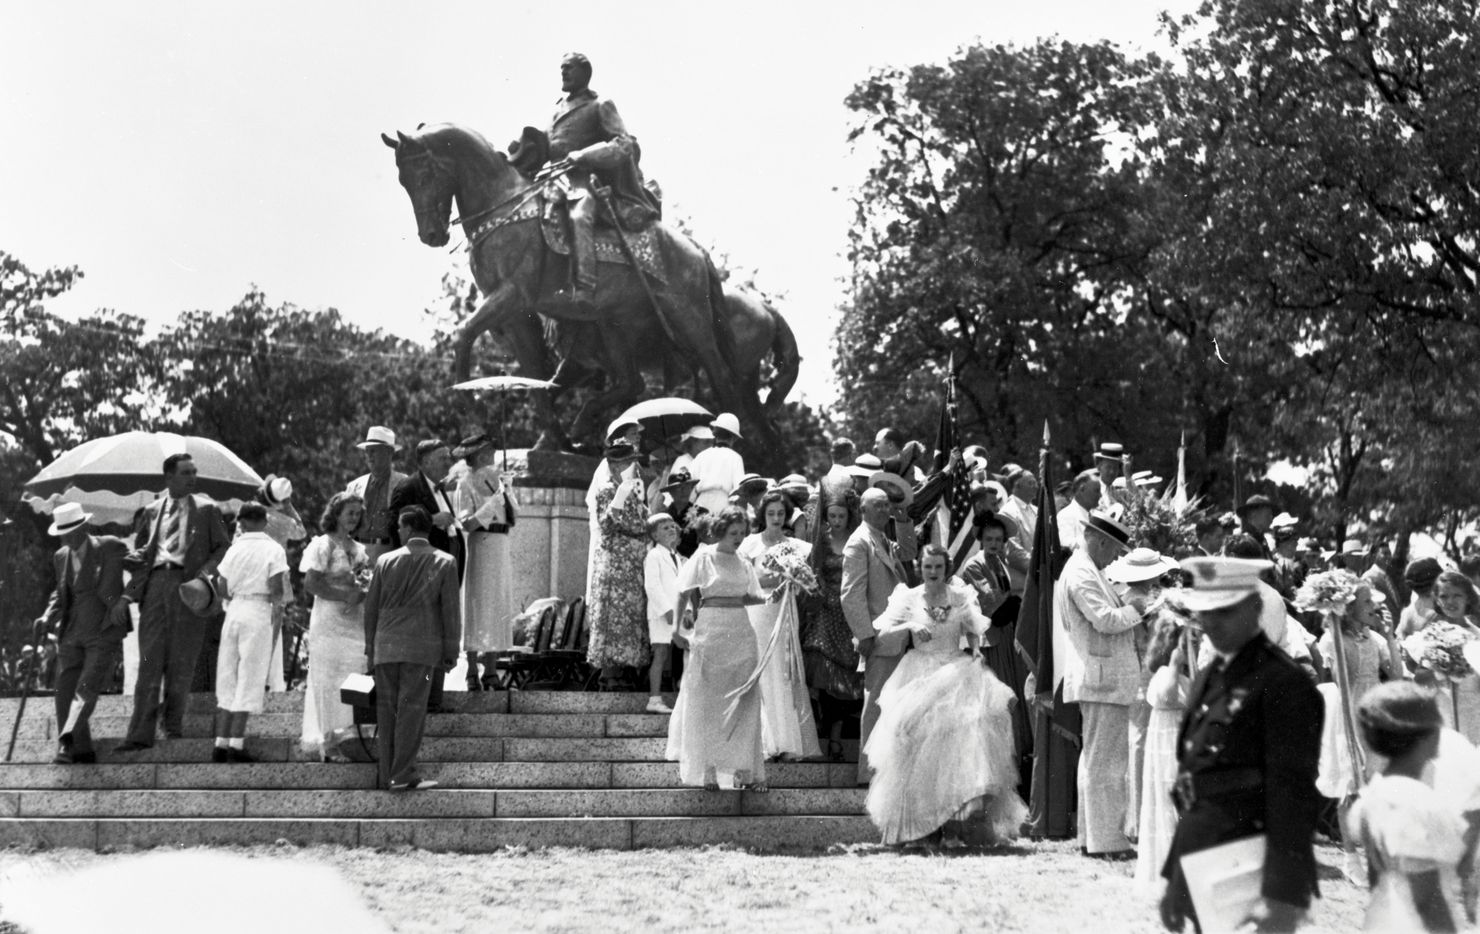 Dressed for a celebratory occasion, members of a crowd mill about the newly unveiled statue of Robert E. Lee after President Franklin D. Roosevelt dedicated it at Lee Park, in Dallas, on June 12, 1936.